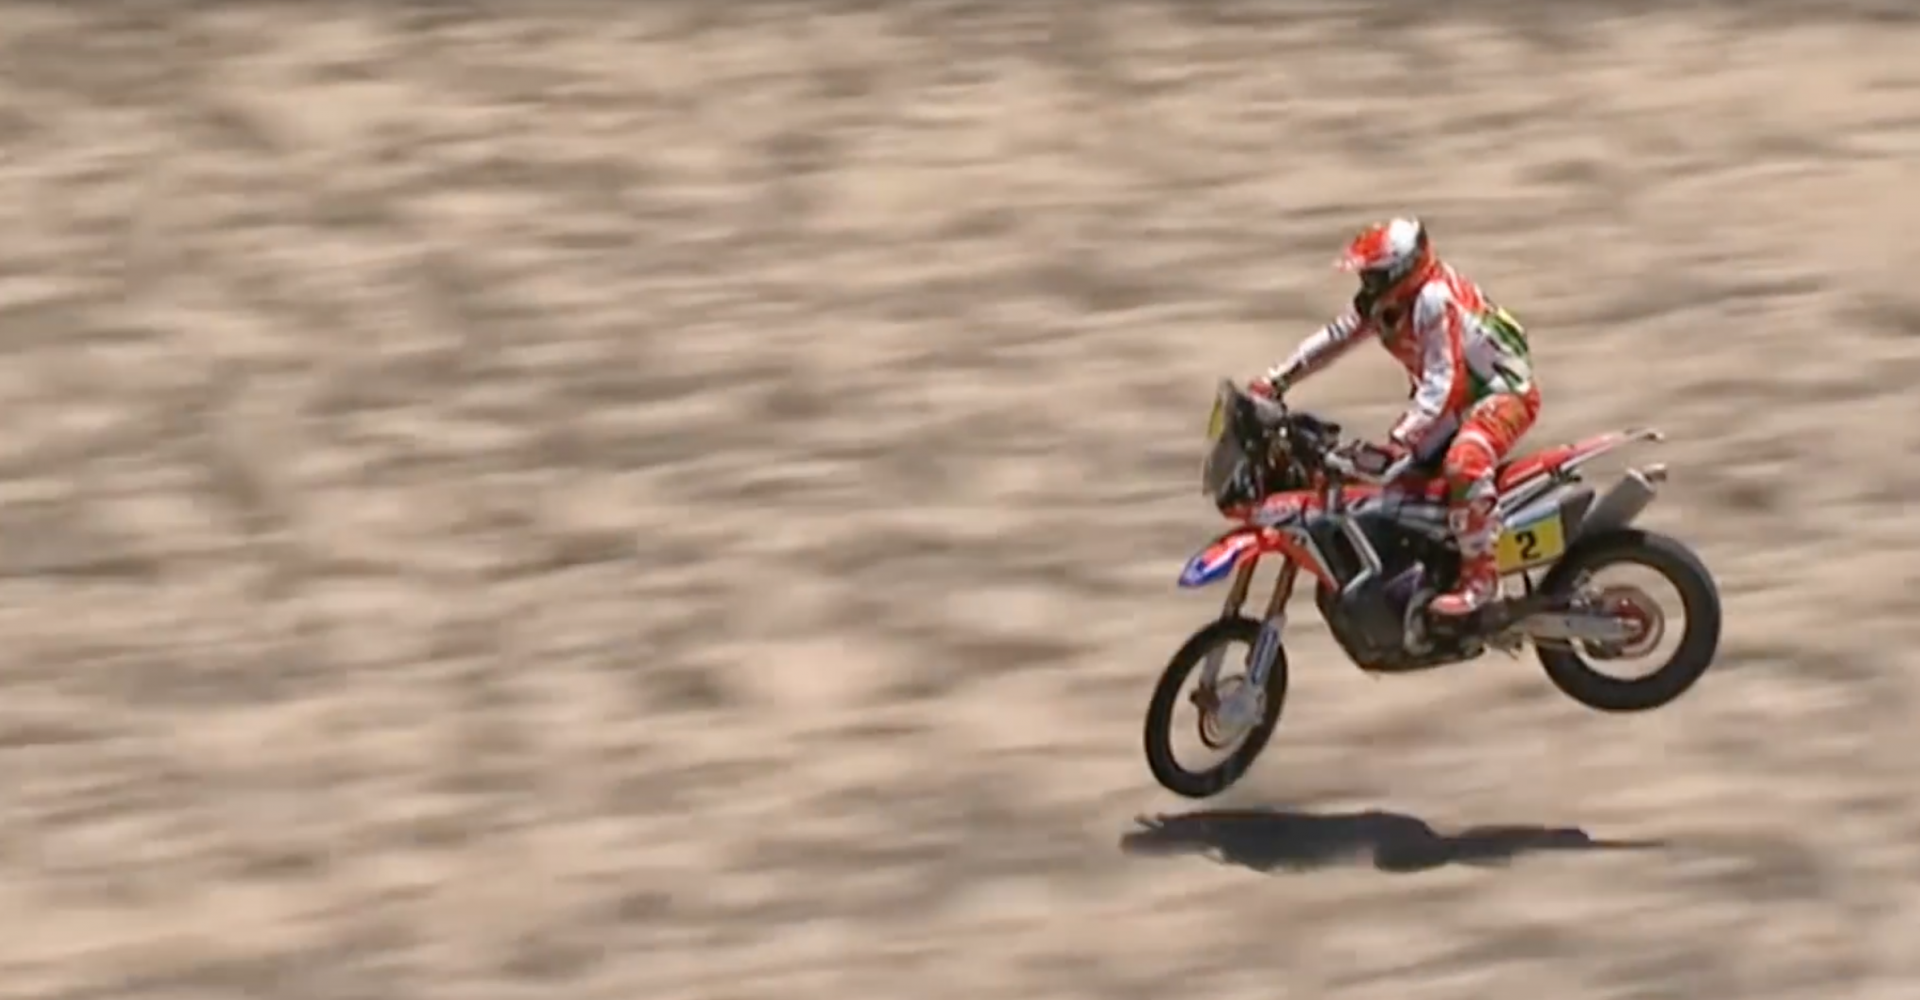 Dakar Rally Crashes Prove Just How Tough Those Drivers Are